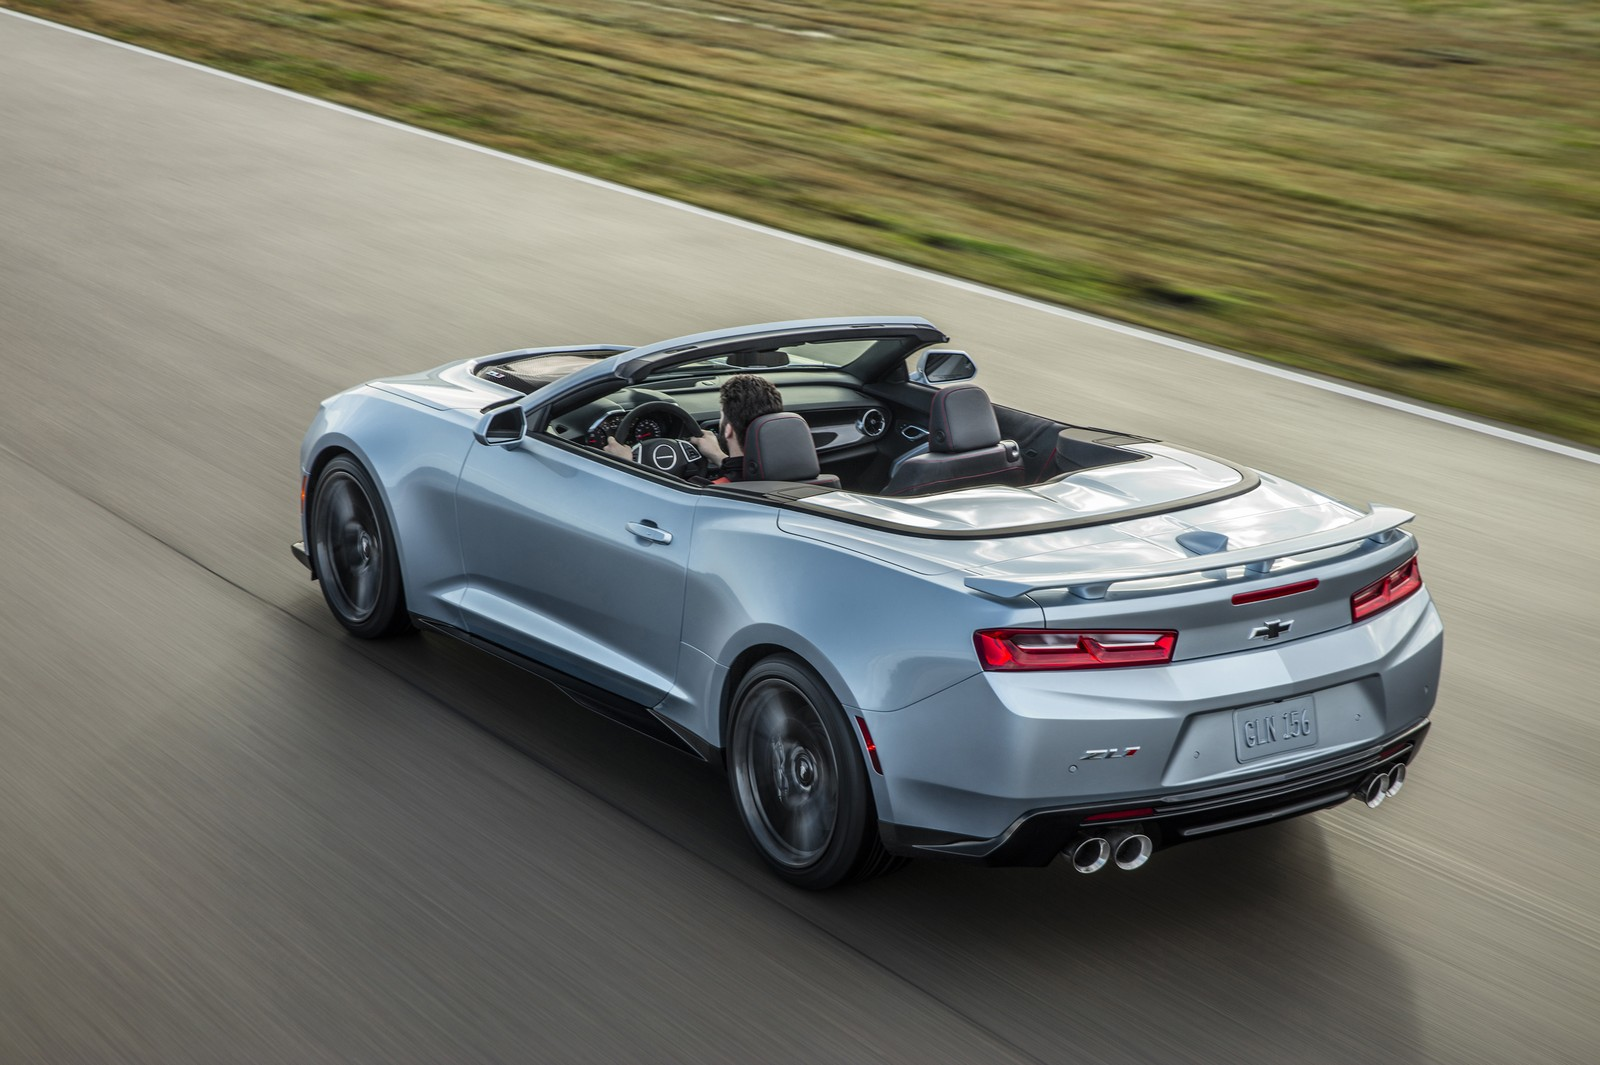 2019 Chevrolet Camaro ZL1 Convertible photo - 2